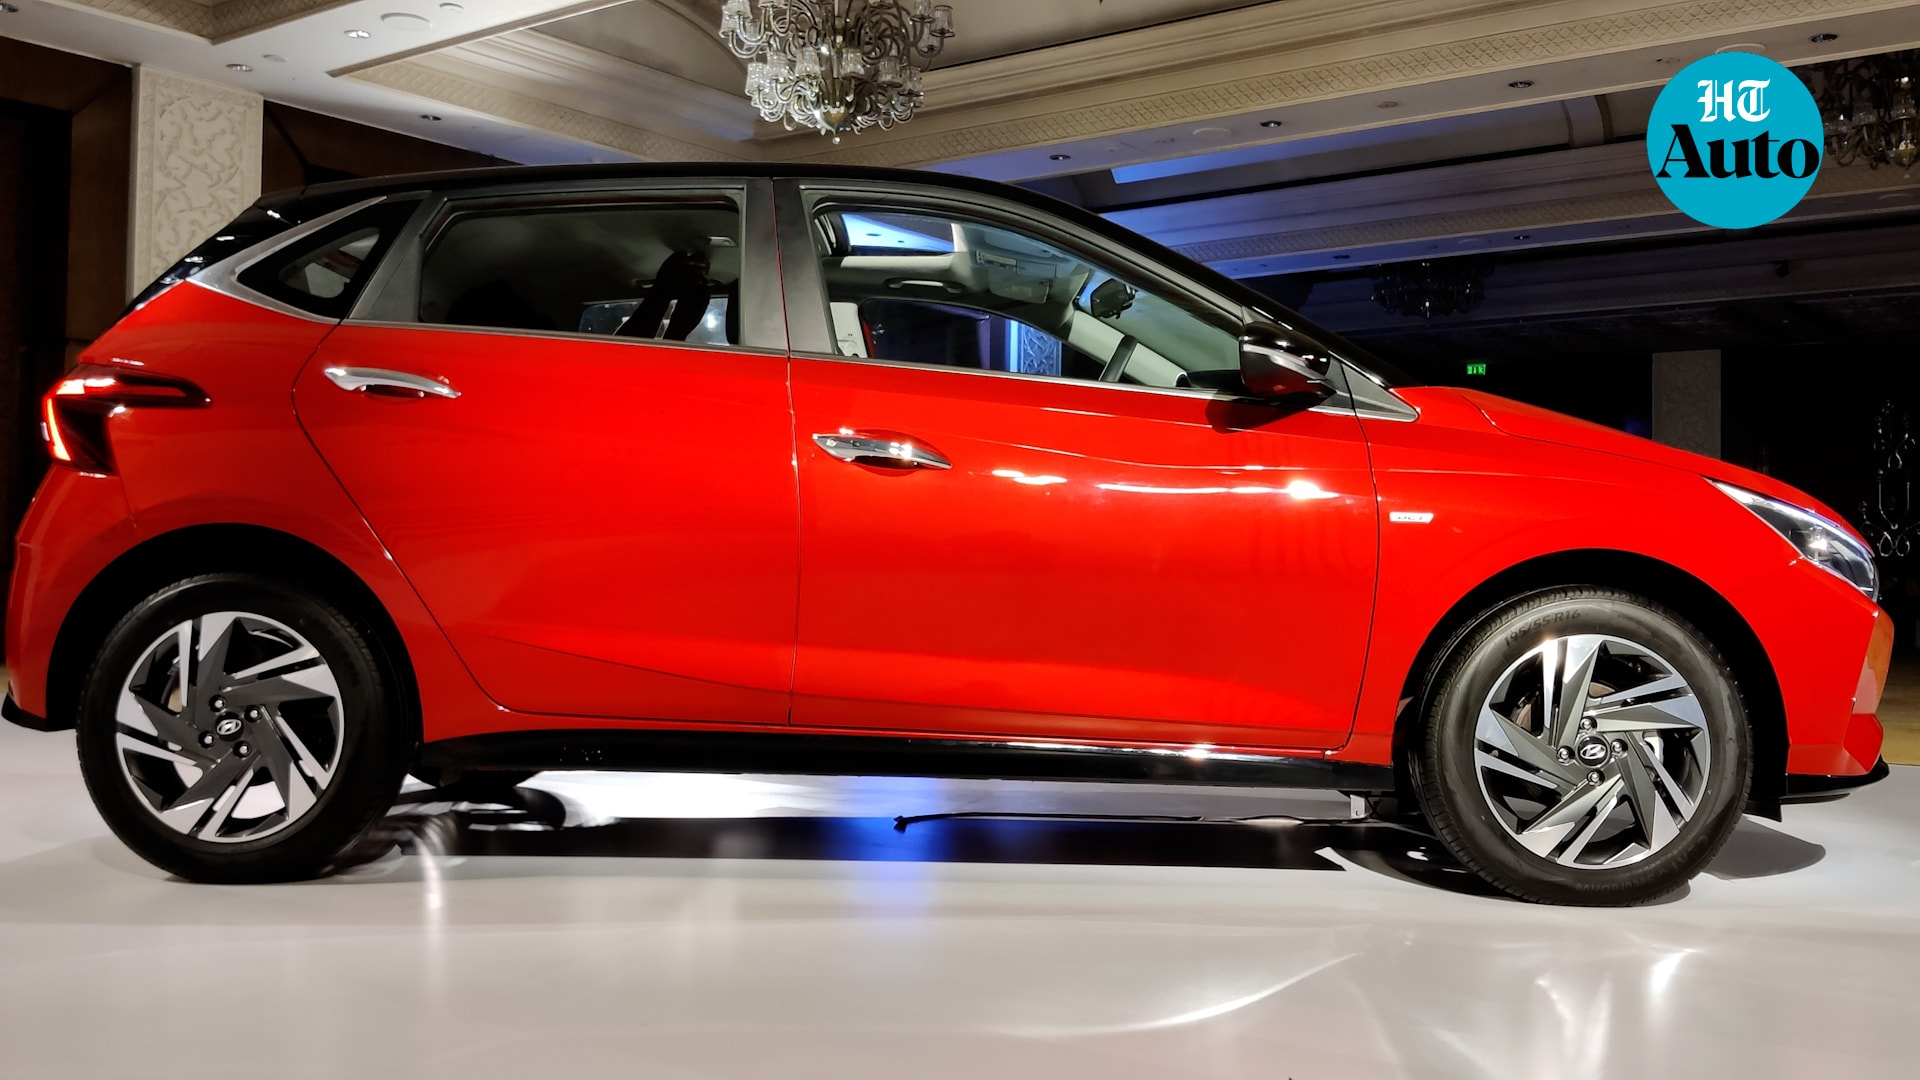 New i20 gets R16 diamond-cut alloys, chrome door handles, fly back chrome beltline design, large quarter-back glass on the C-pillar and a blackened side sill garnish with another i20 brand badge here.